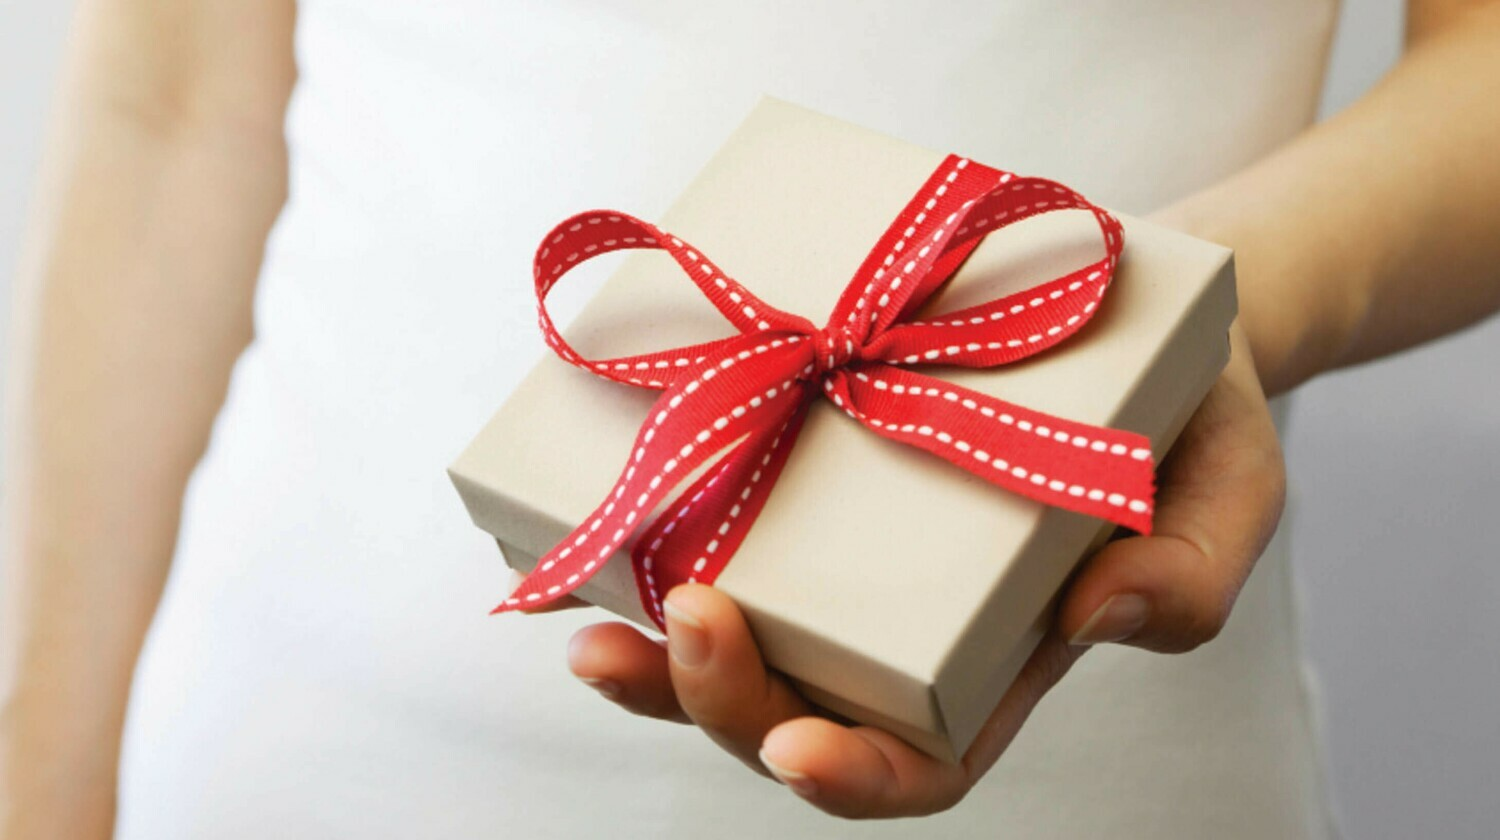 The Greatest Gift (Voucher)